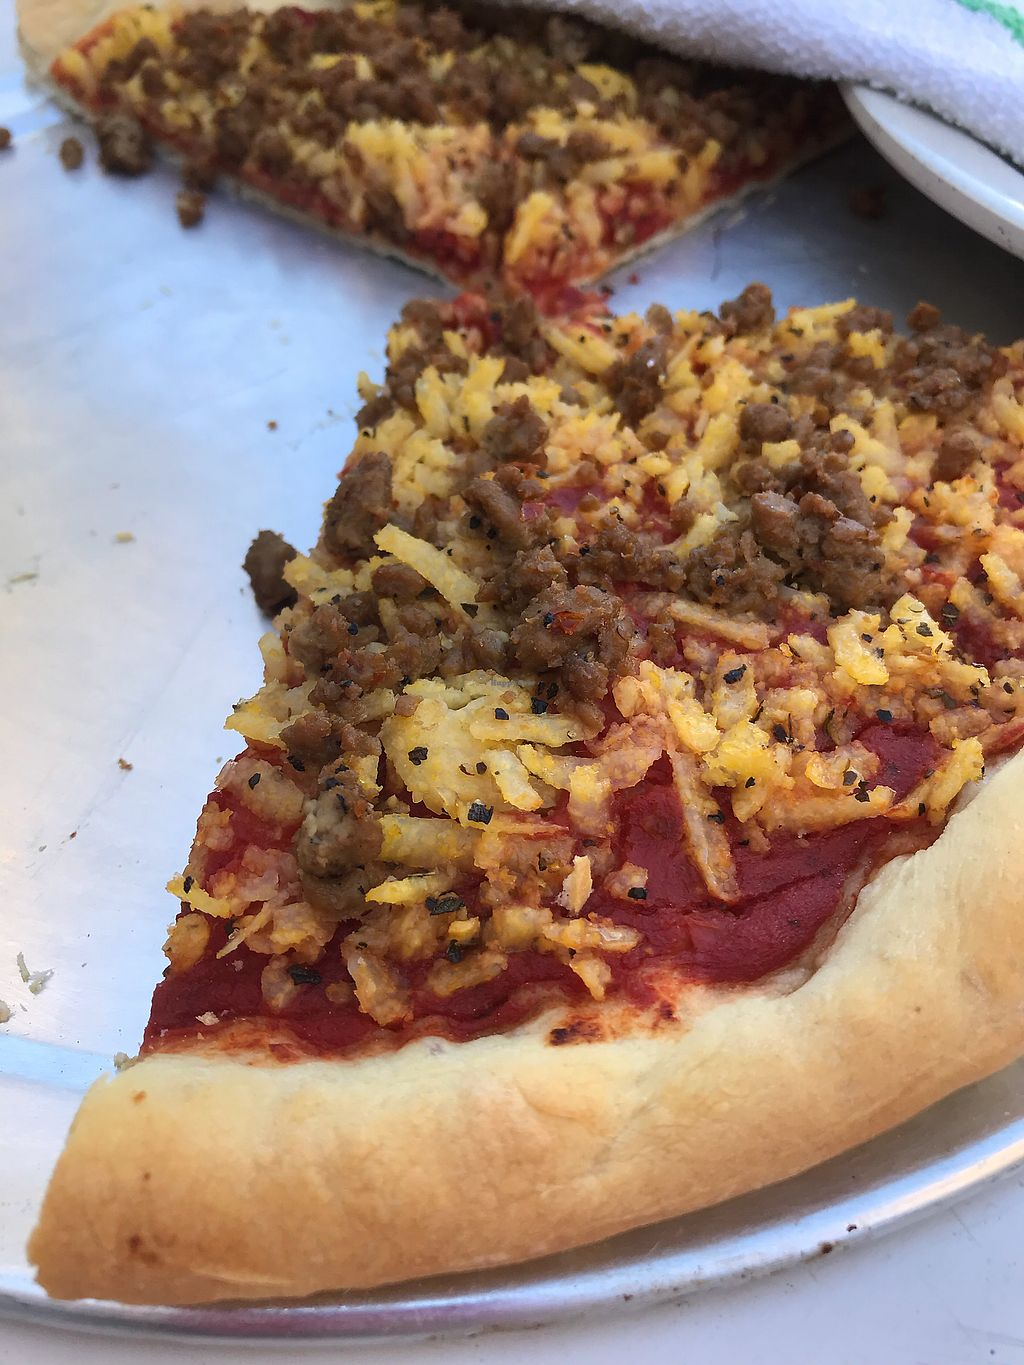 """Photo of The Pizza Patio  by <a href=""""/members/profile/Justusveggies"""">Justusveggies</a> <br/>Vegan Italian sausage and shredded polenta """"cheese""""  <br/> October 26, 2017  - <a href='/contact/abuse/image/103761/319113'>Report</a>"""